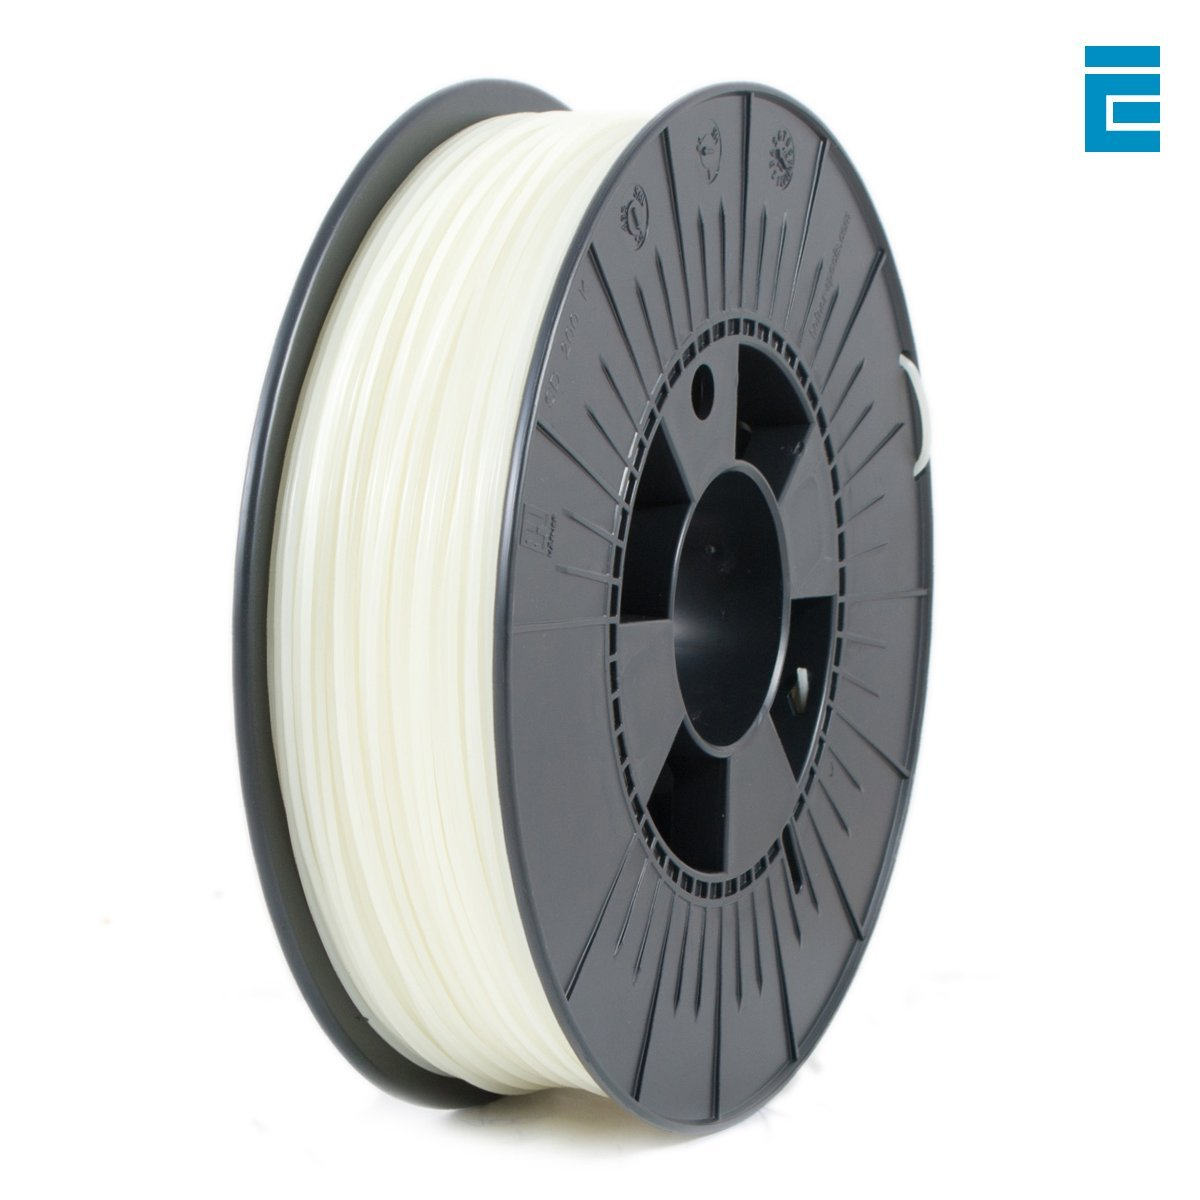 ICE Filaments ICEFIL1ABS051 ABS filament, 1.75mm, 0.75 kg, Glow-in-the-Dark MCPP